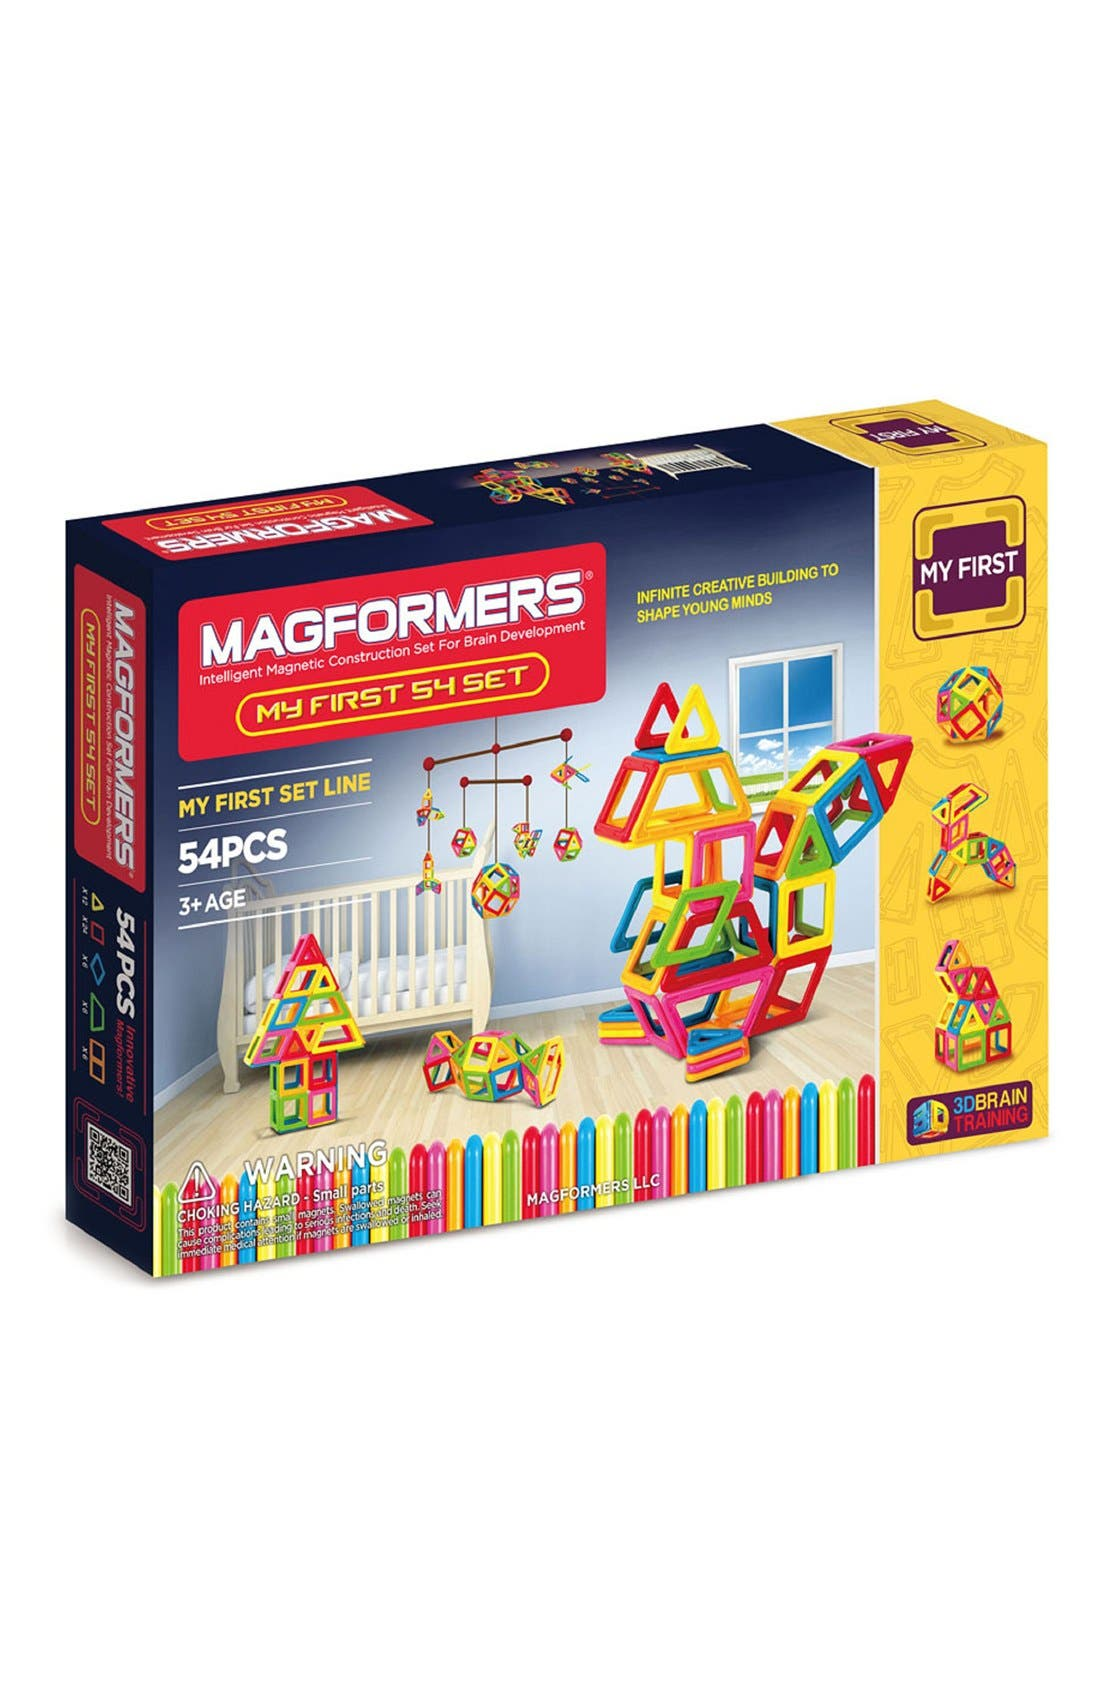 Alternate Image 1 Selected - Magformers 'My First' Magnetic Construction Set